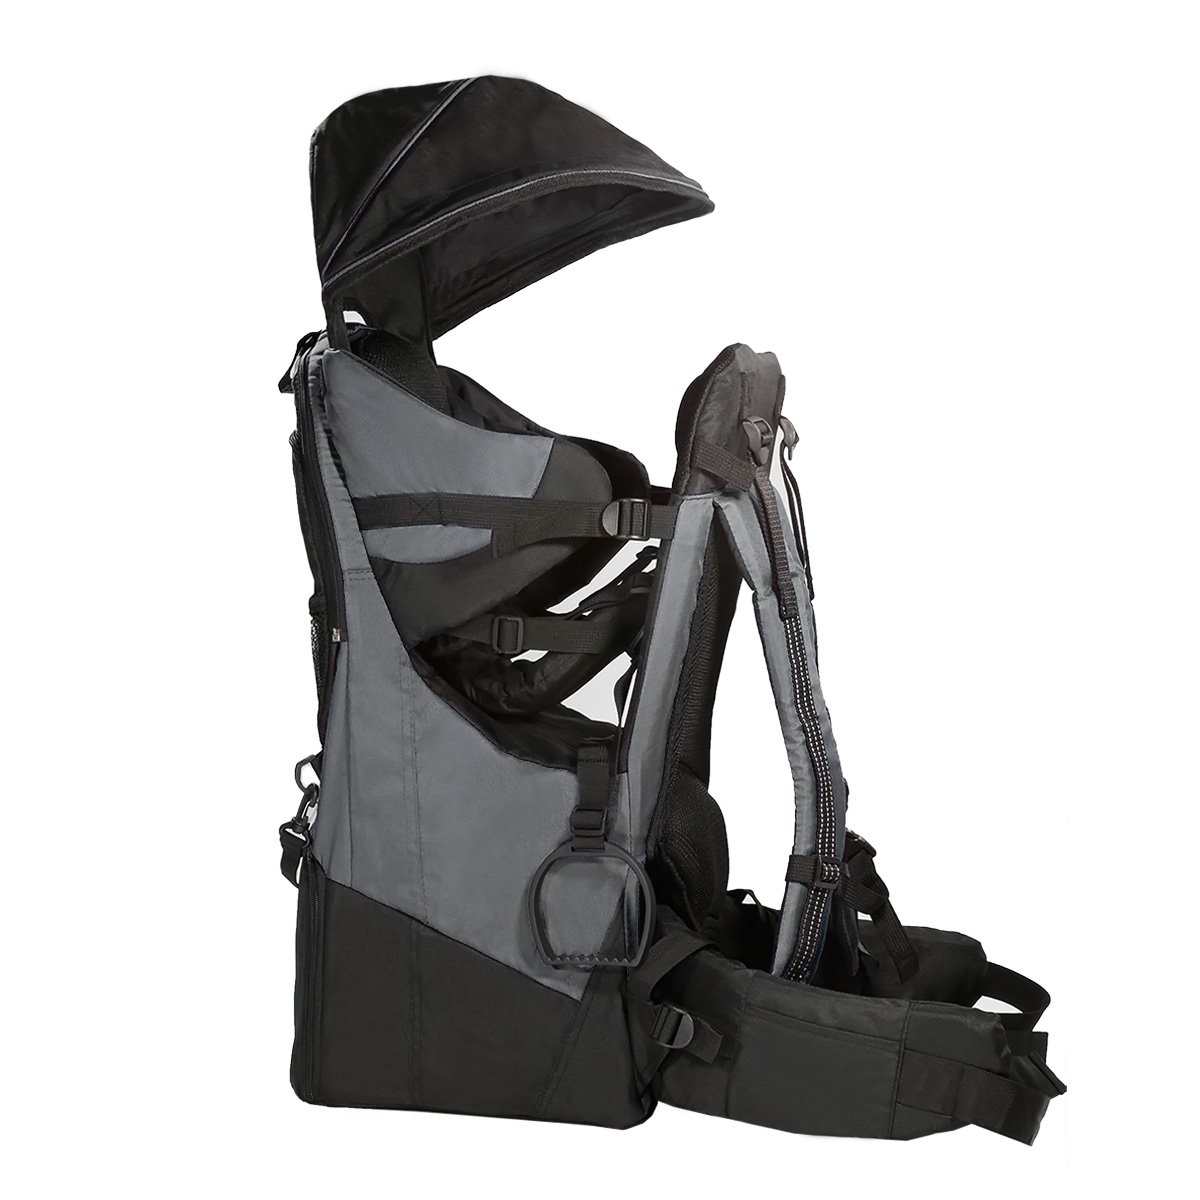 ClevrPlus Deluxe Baby Backpack Hiking Toddler Child Carrier Lightweight with Stand Sun Shade Visor, Grey 1 Year Limited Warranty